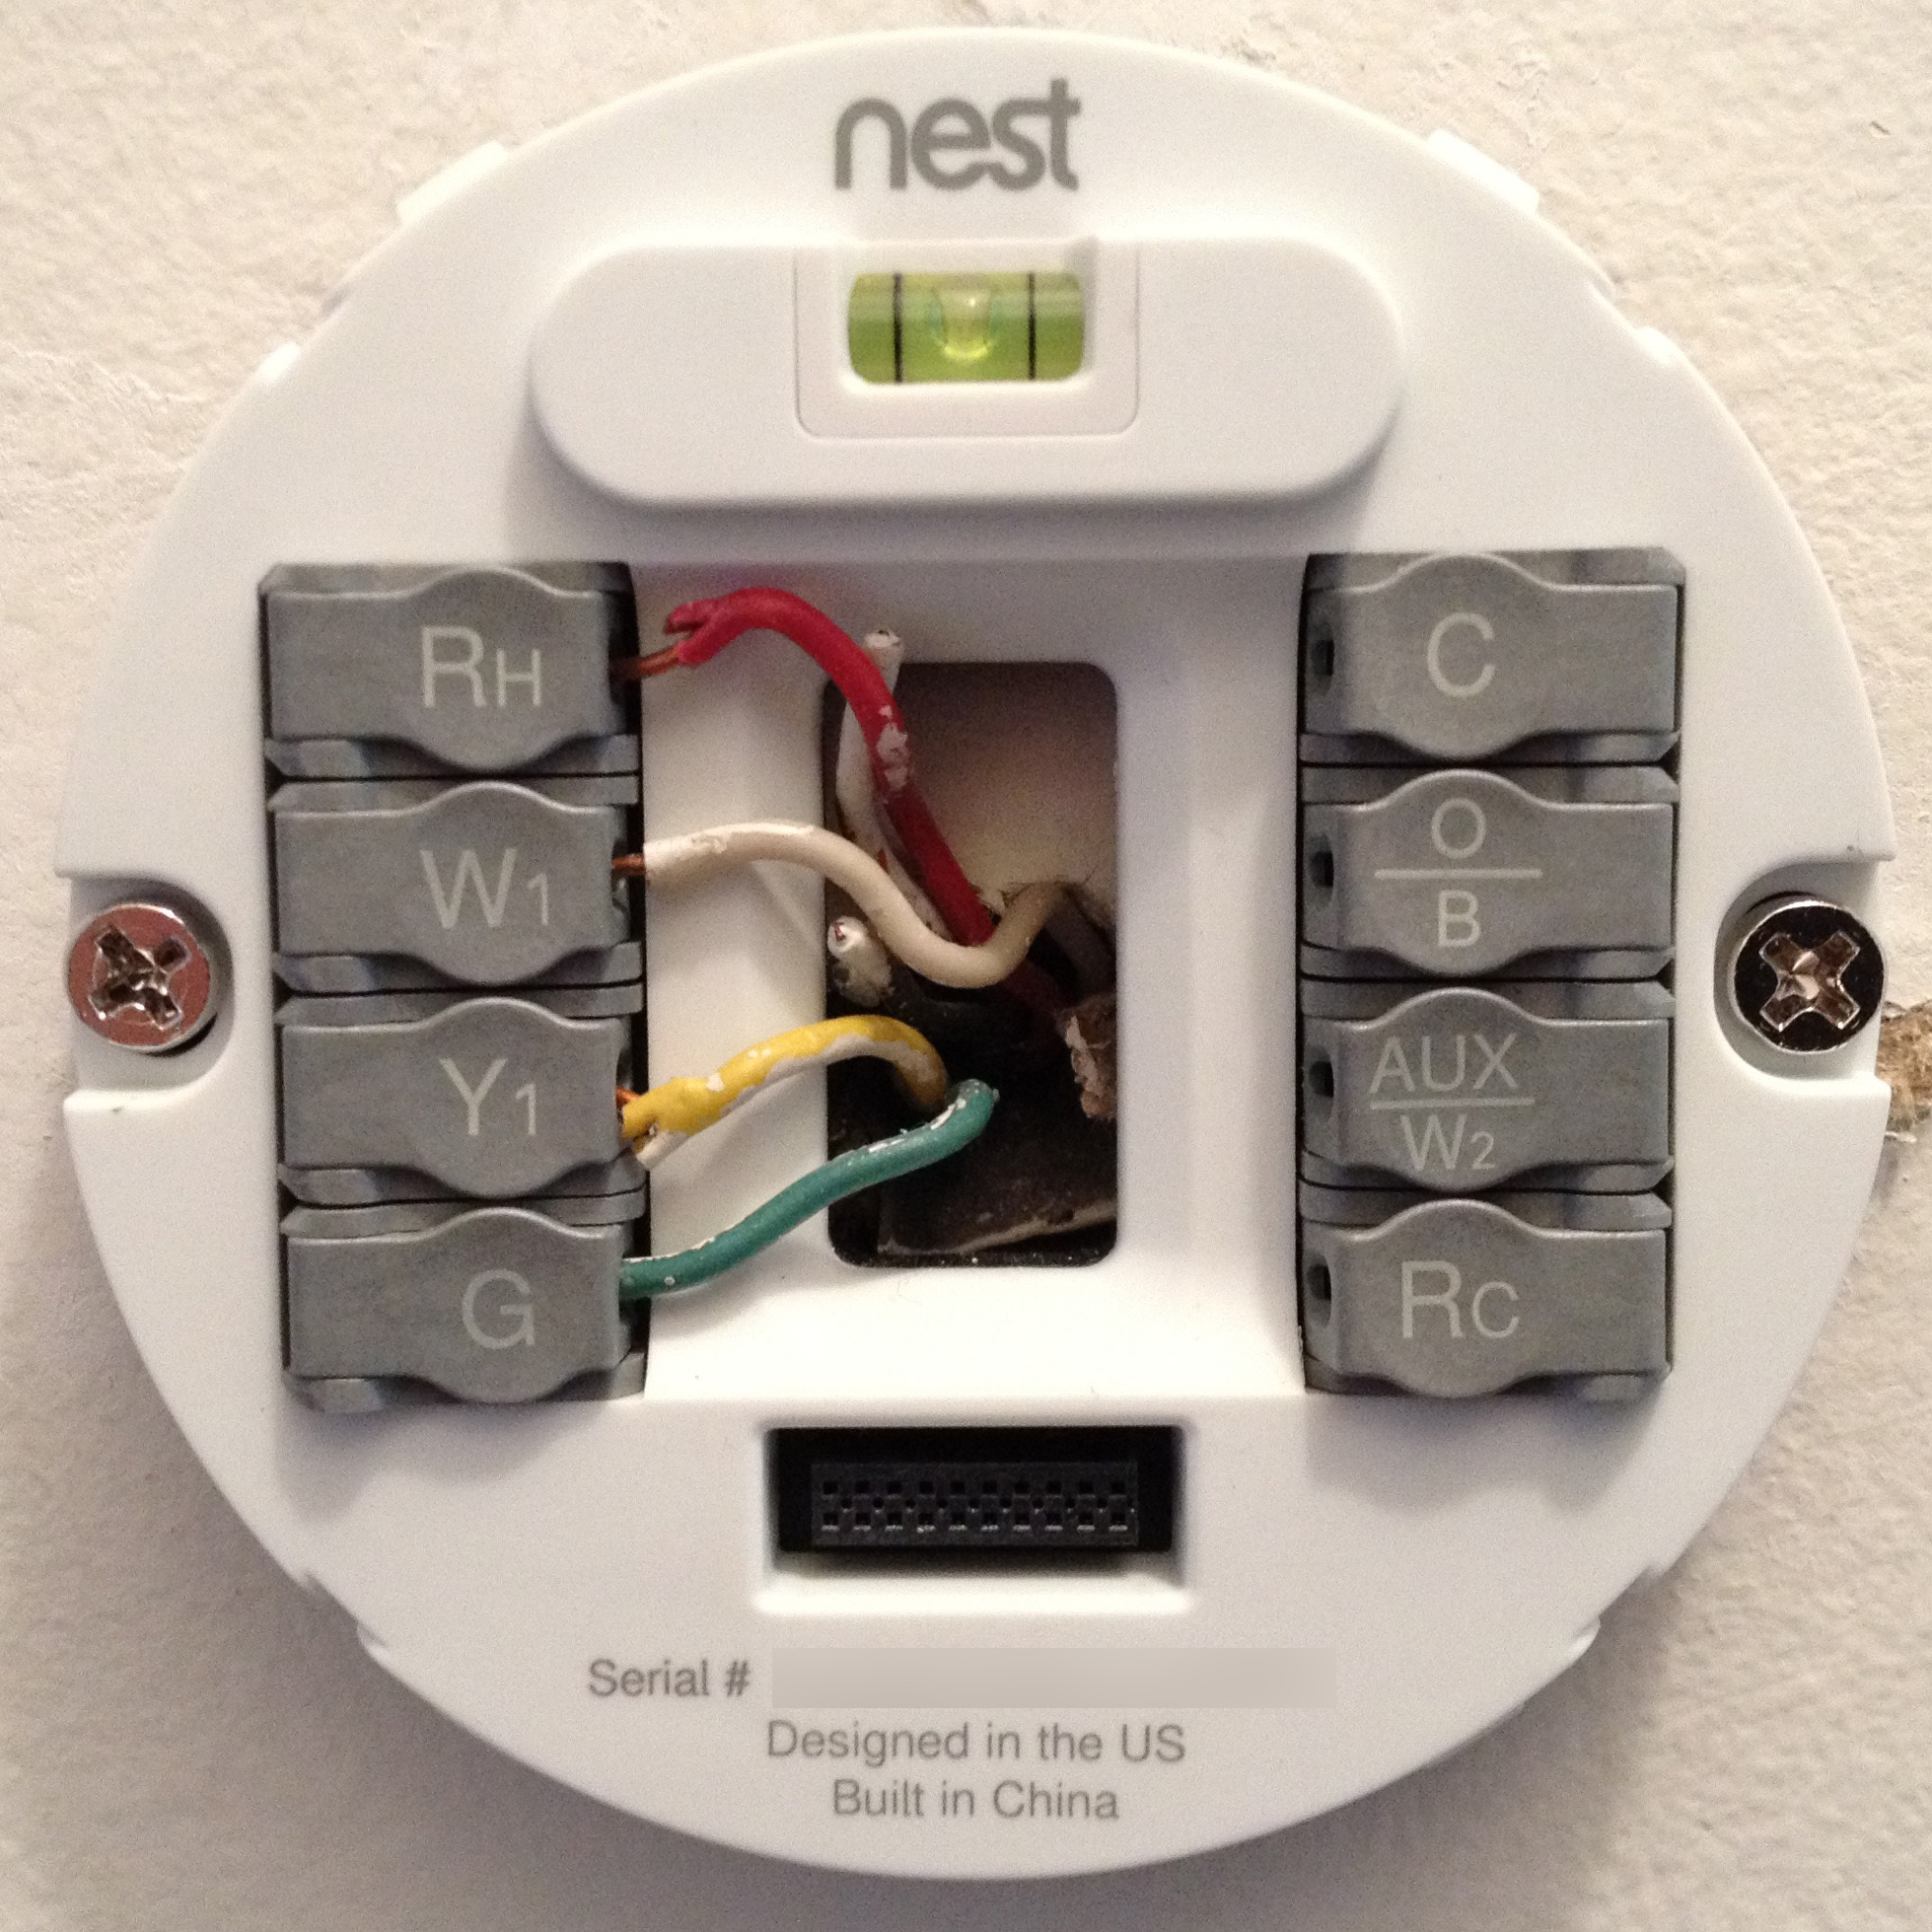 nest install unscripted rh cliftongrimm com Nest Thermostat Wiring Diagram nest wiring jumper